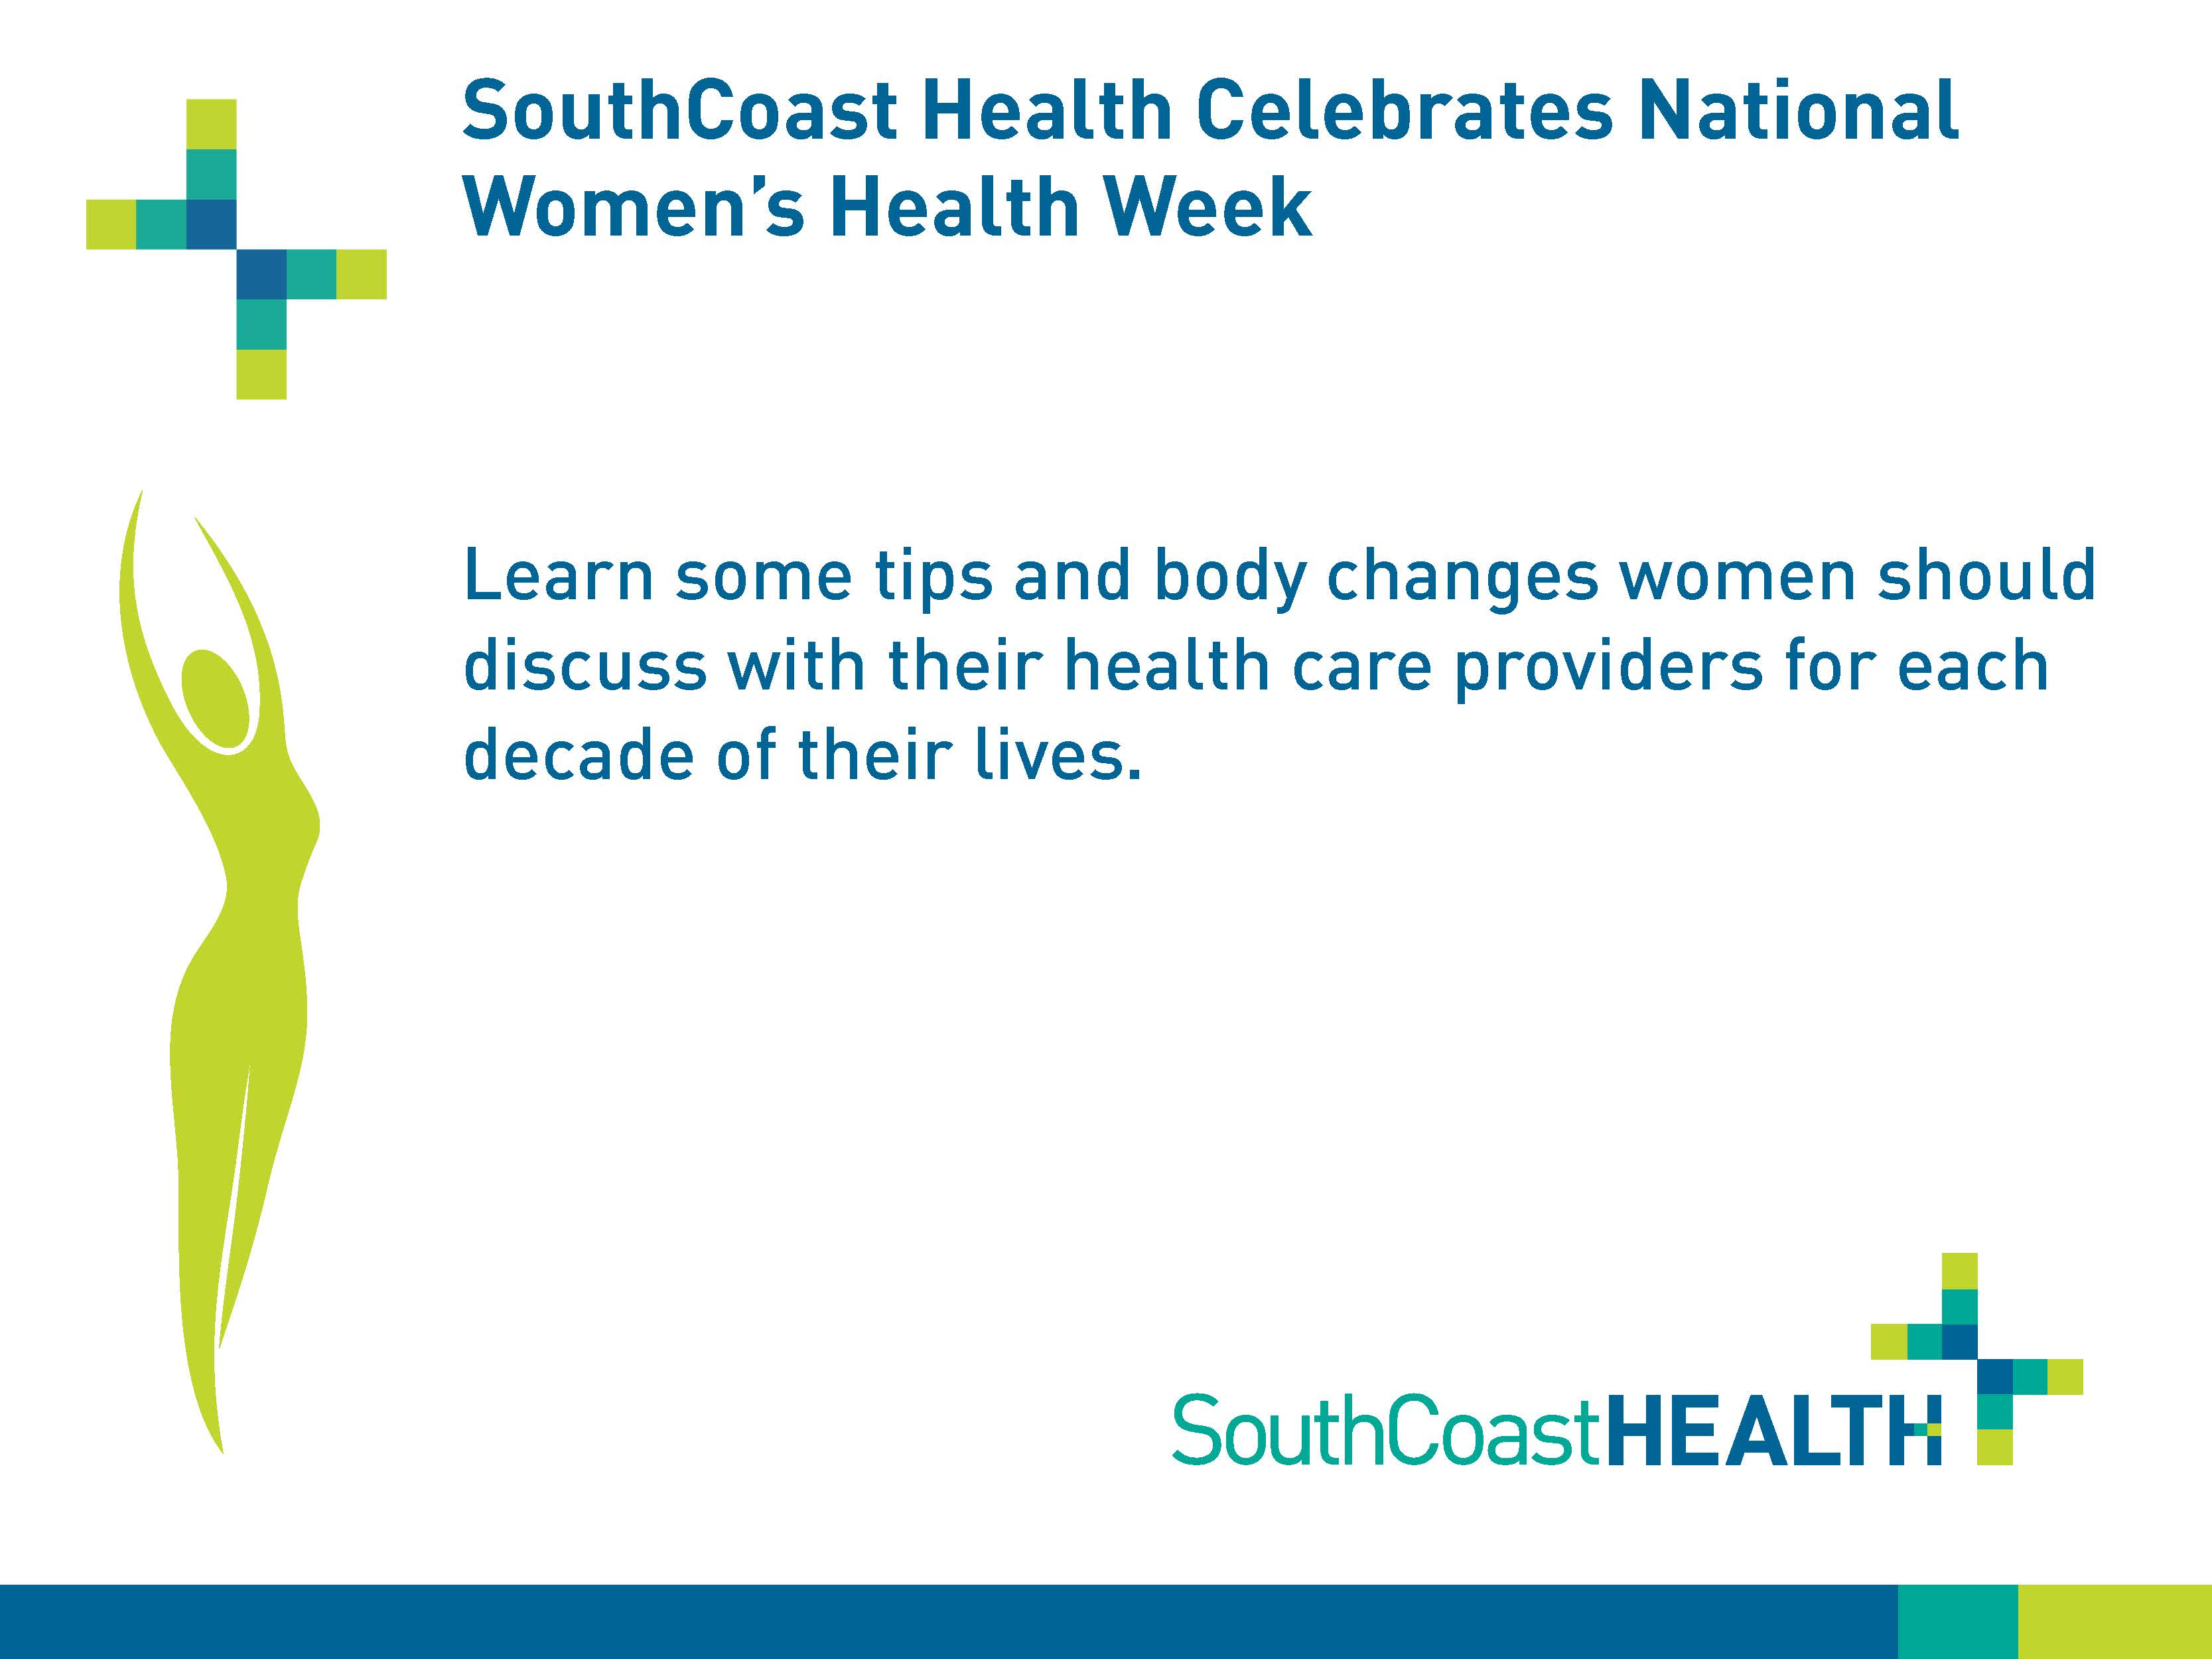 SouthCoast Health Celebrates National Women's Health Week. Learn some tips and body changes women should discuss with their health care providers for each decade of their lives.